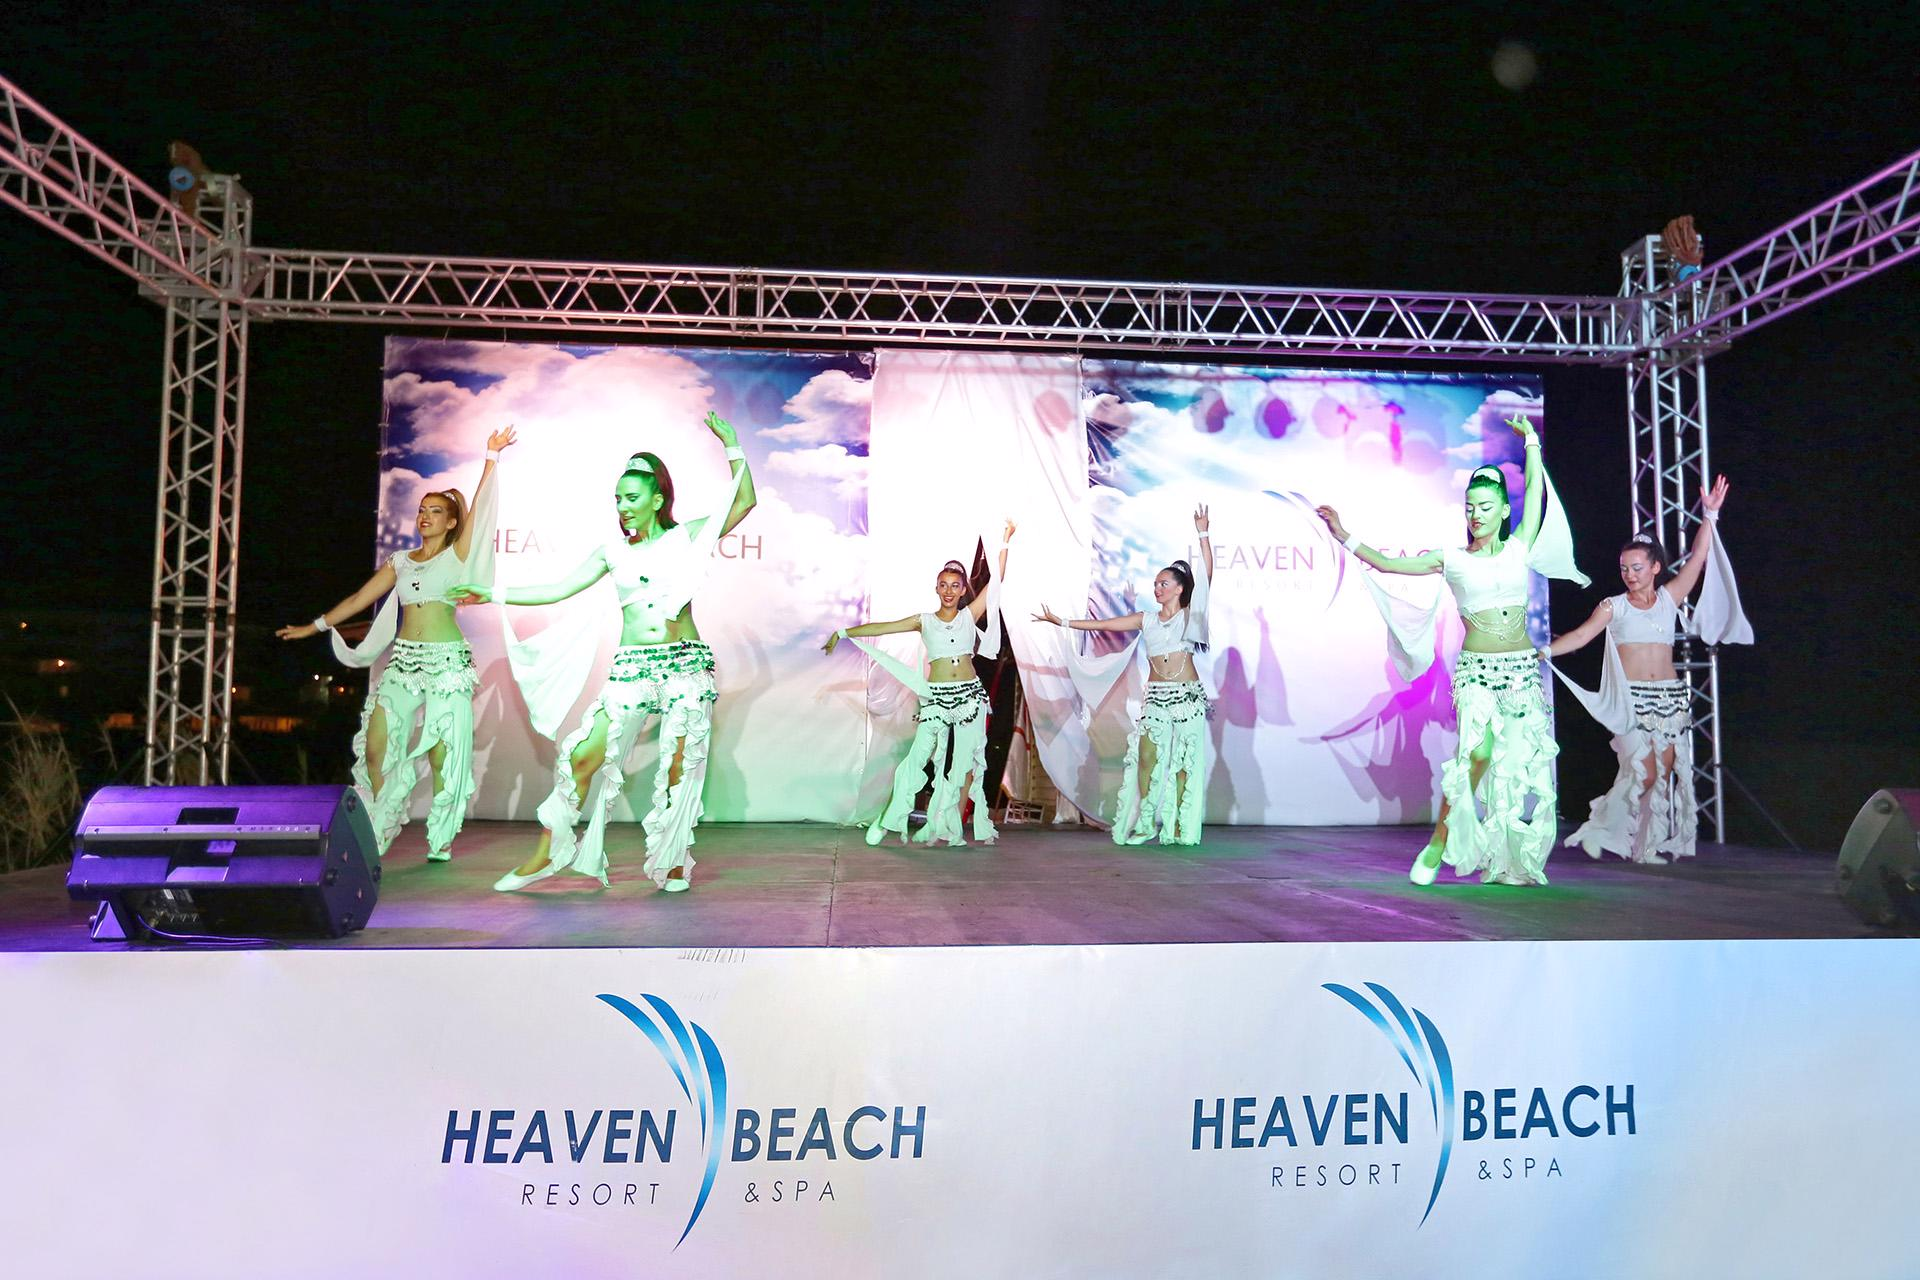 HEAVEN BEACH RESORT & SPA